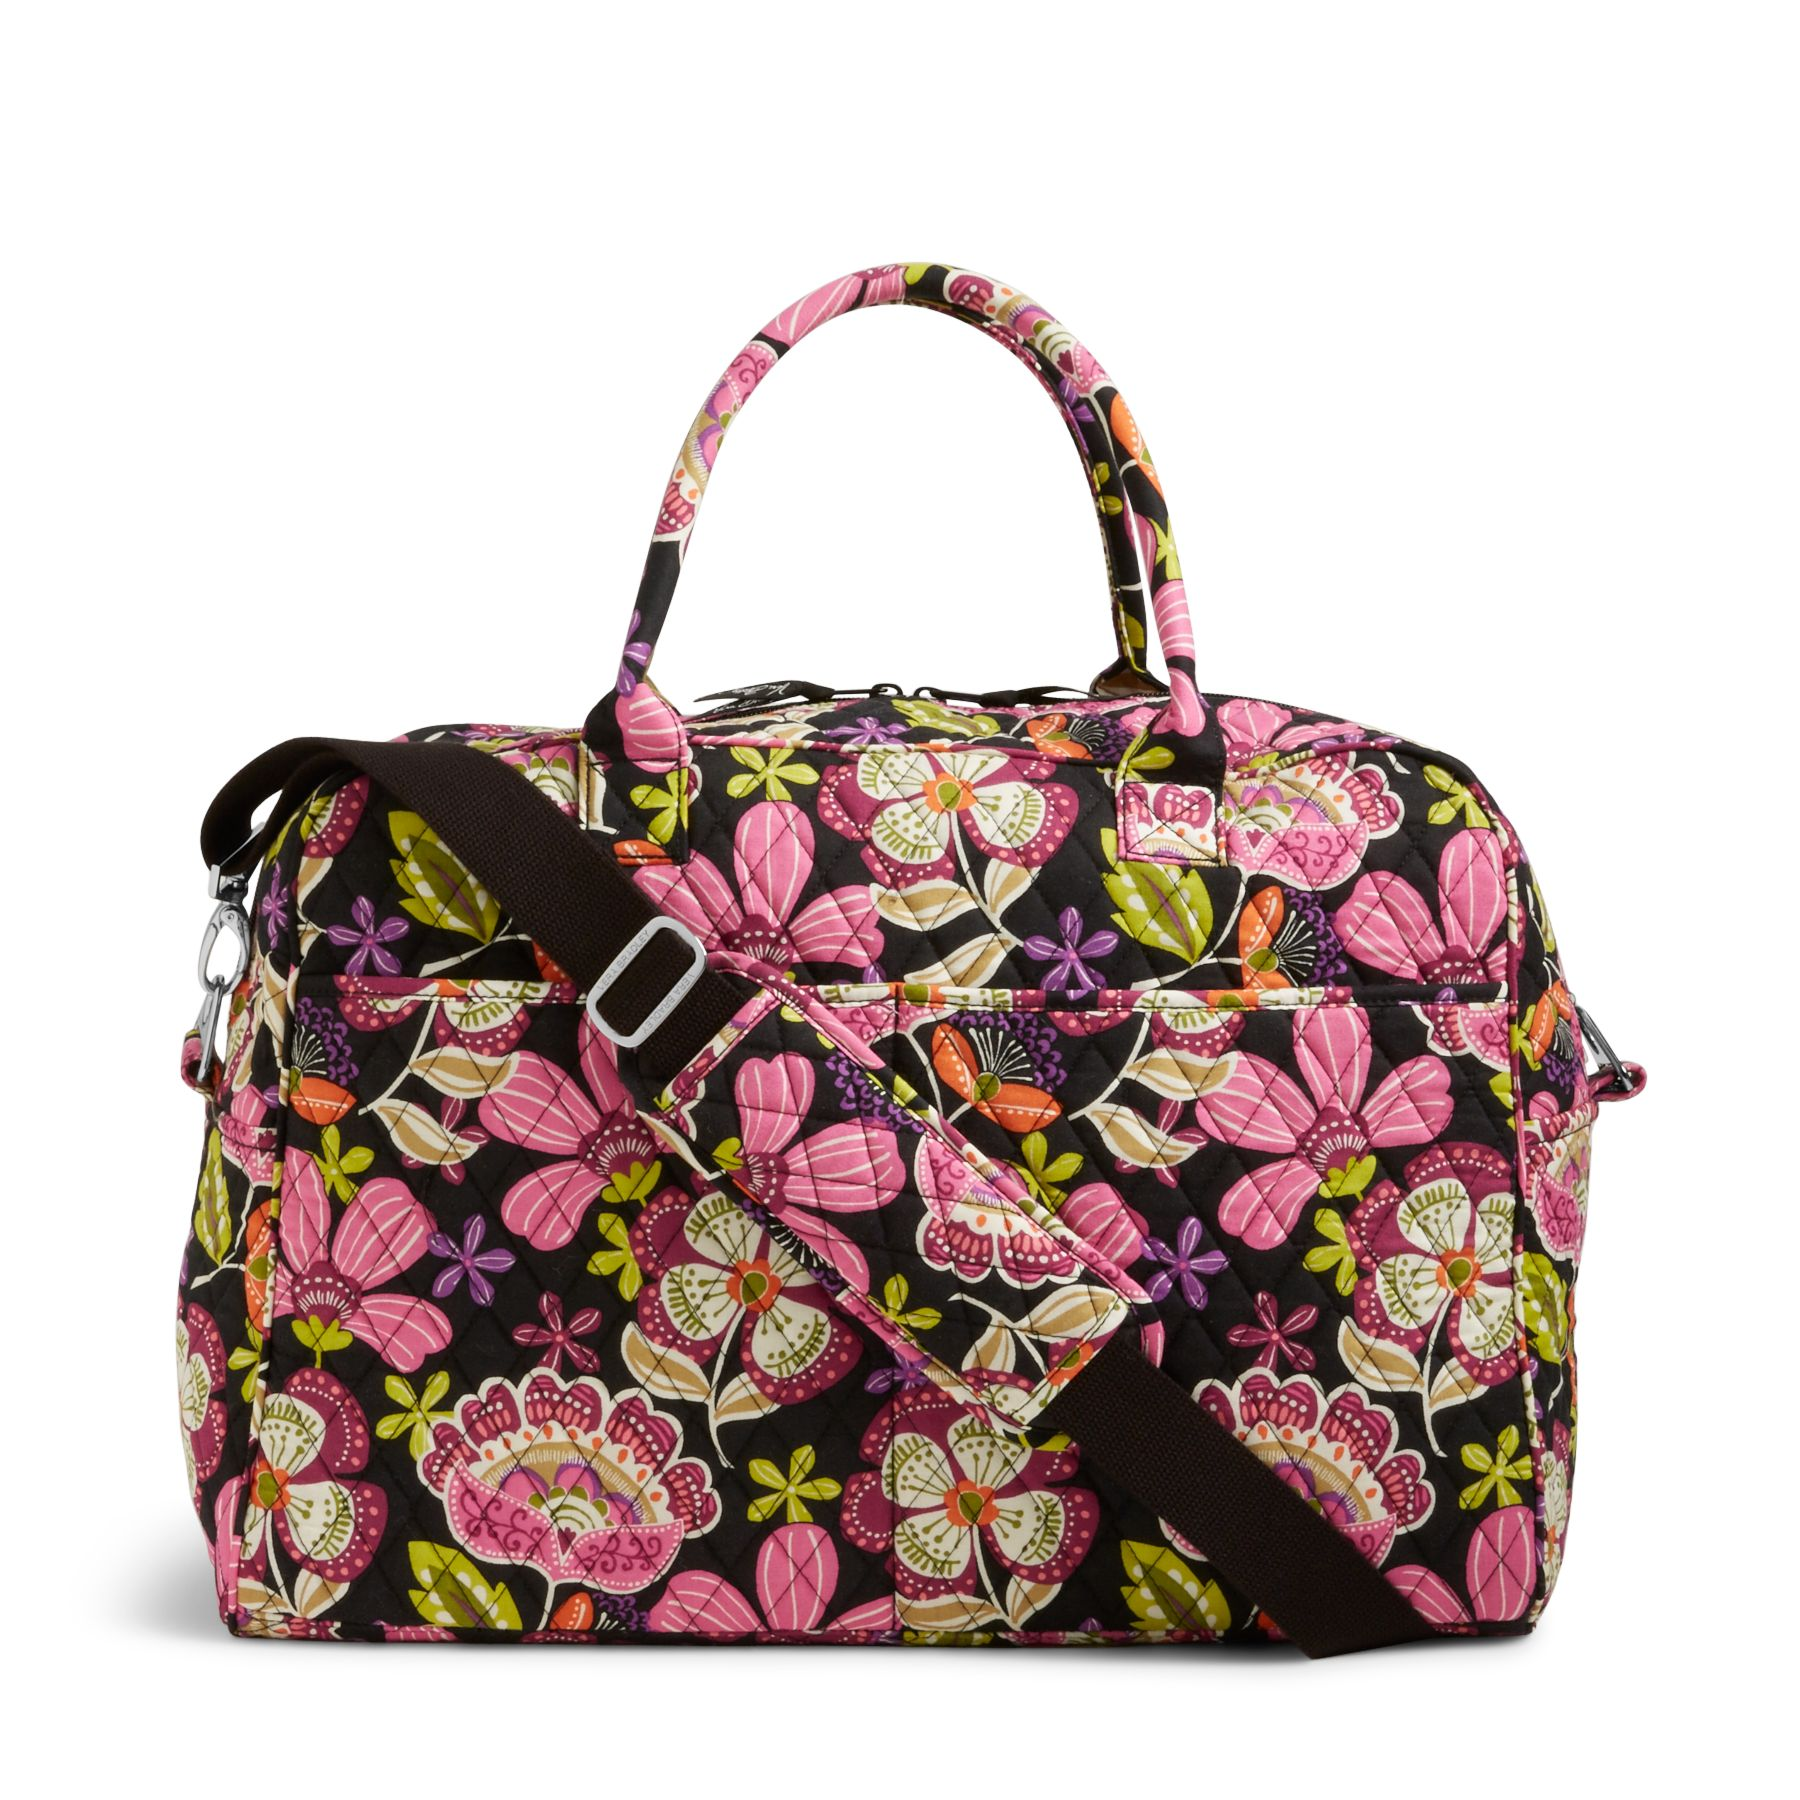 What are the best Vera Bradley sales? The best sales from Vera Bradley is easily their online clearance where a selection of items are discounted % off. Once in awhile, Vera Bradley will have select colors and prints design from 30%, 40%, 50% or 60% off on their sale .